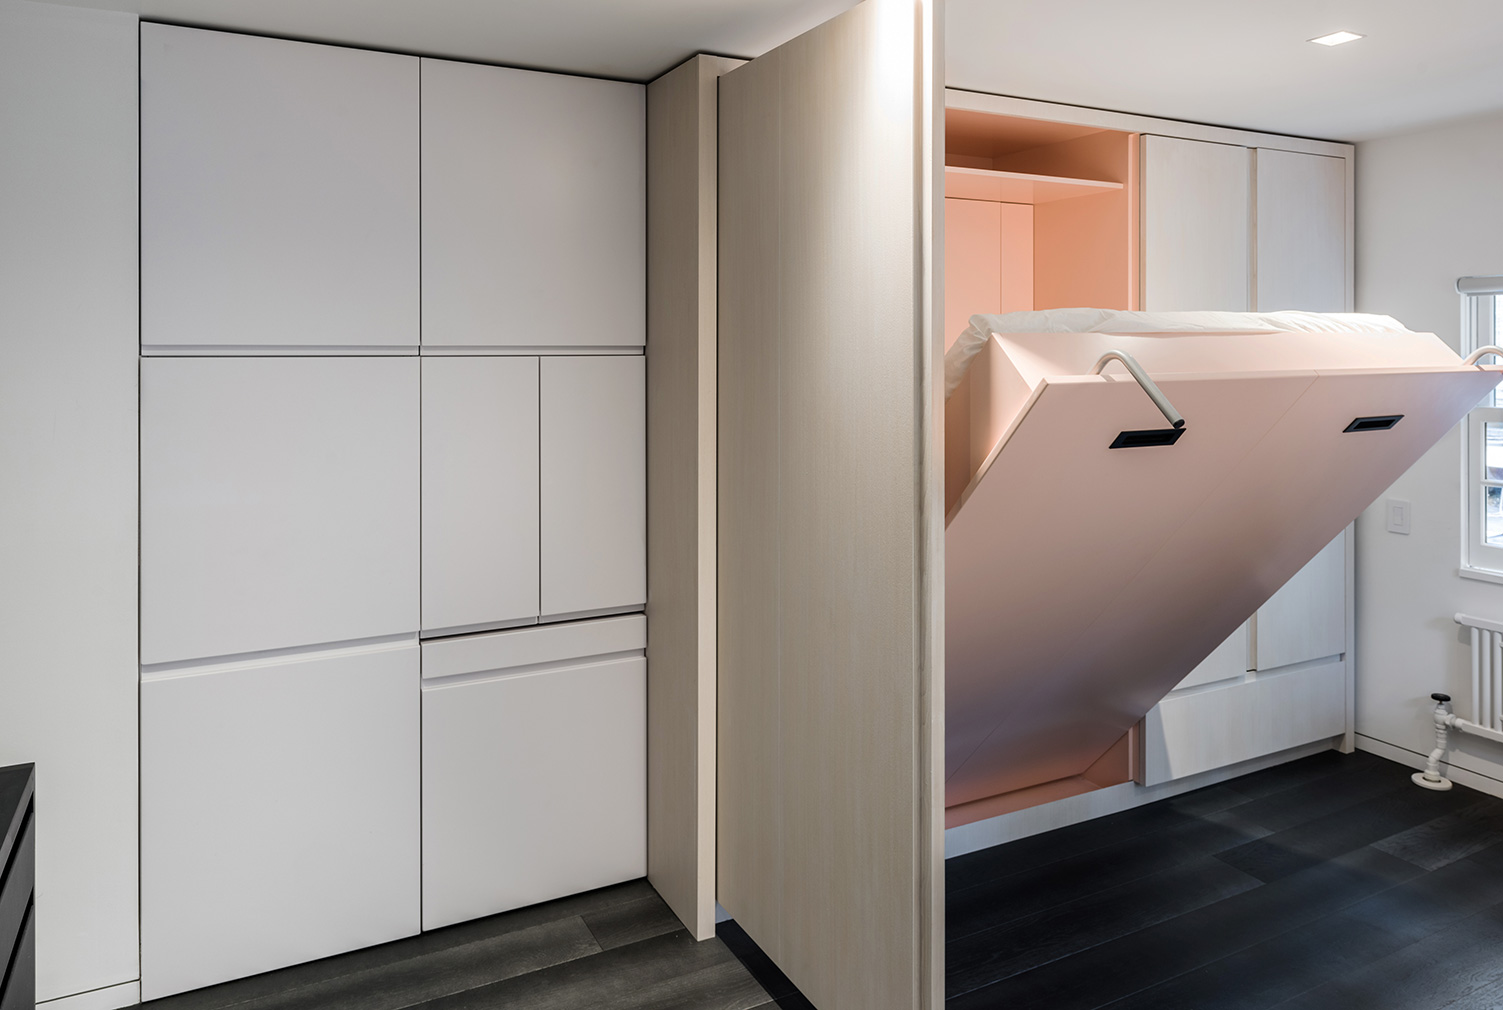 Micro home apartment designed by Michael Chen